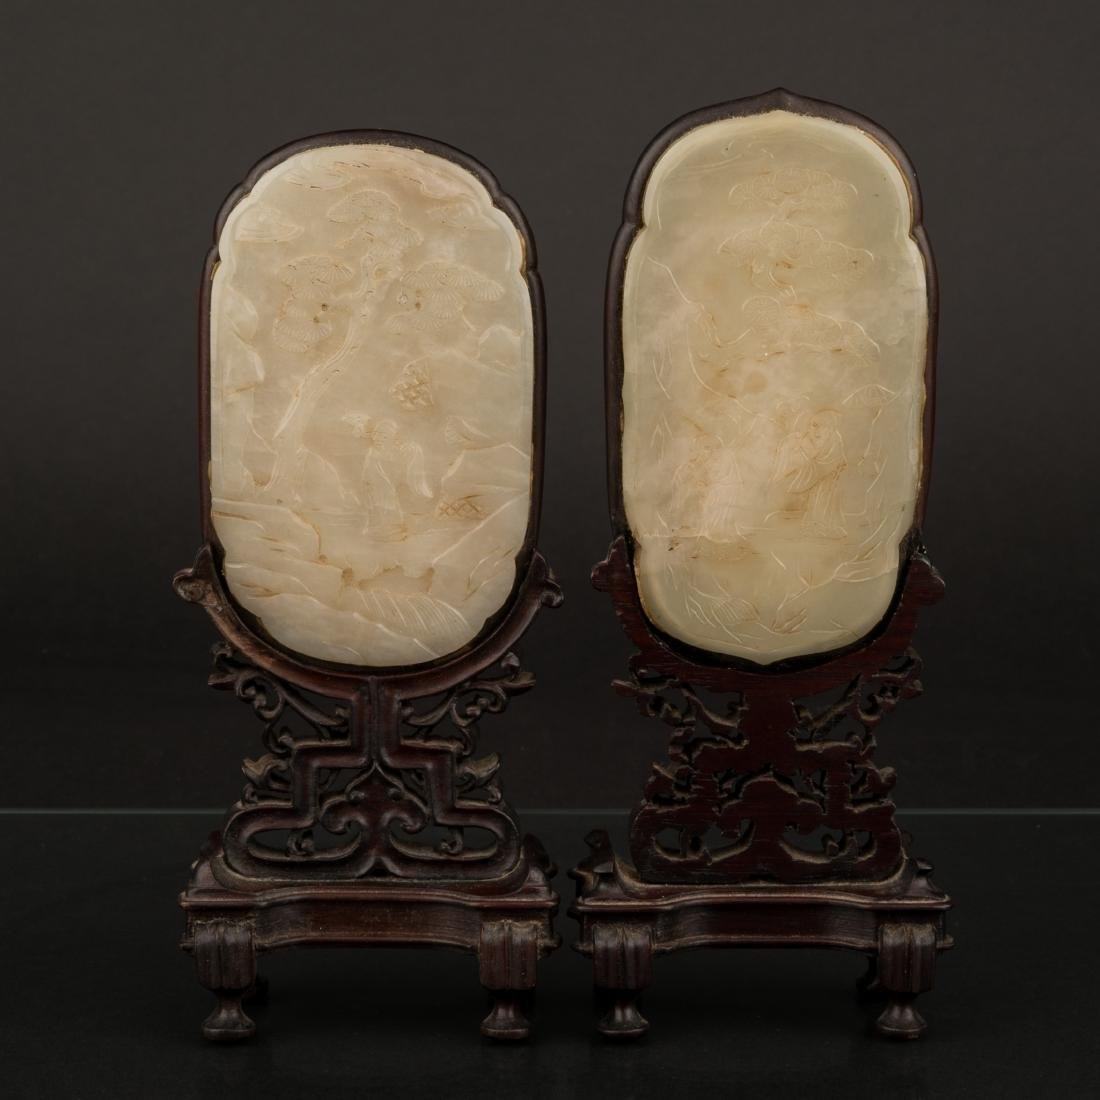 SET OF 2 PCS 19TH C WHITE JADE PLAQUES